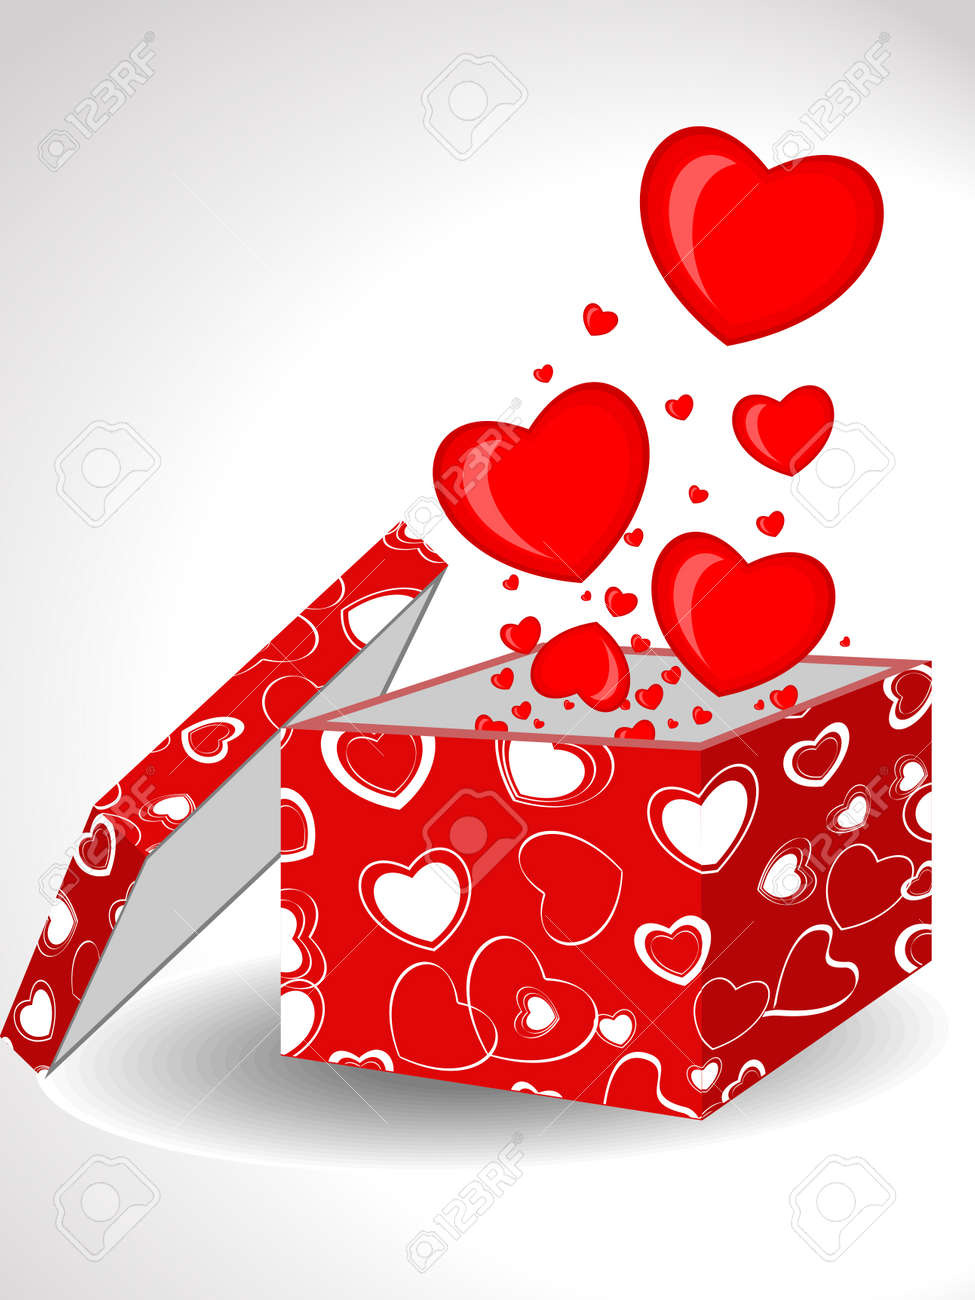 Heart Shapes Coming Out Form Open Gift Box Decorated With Abstract Shape Cover In Red